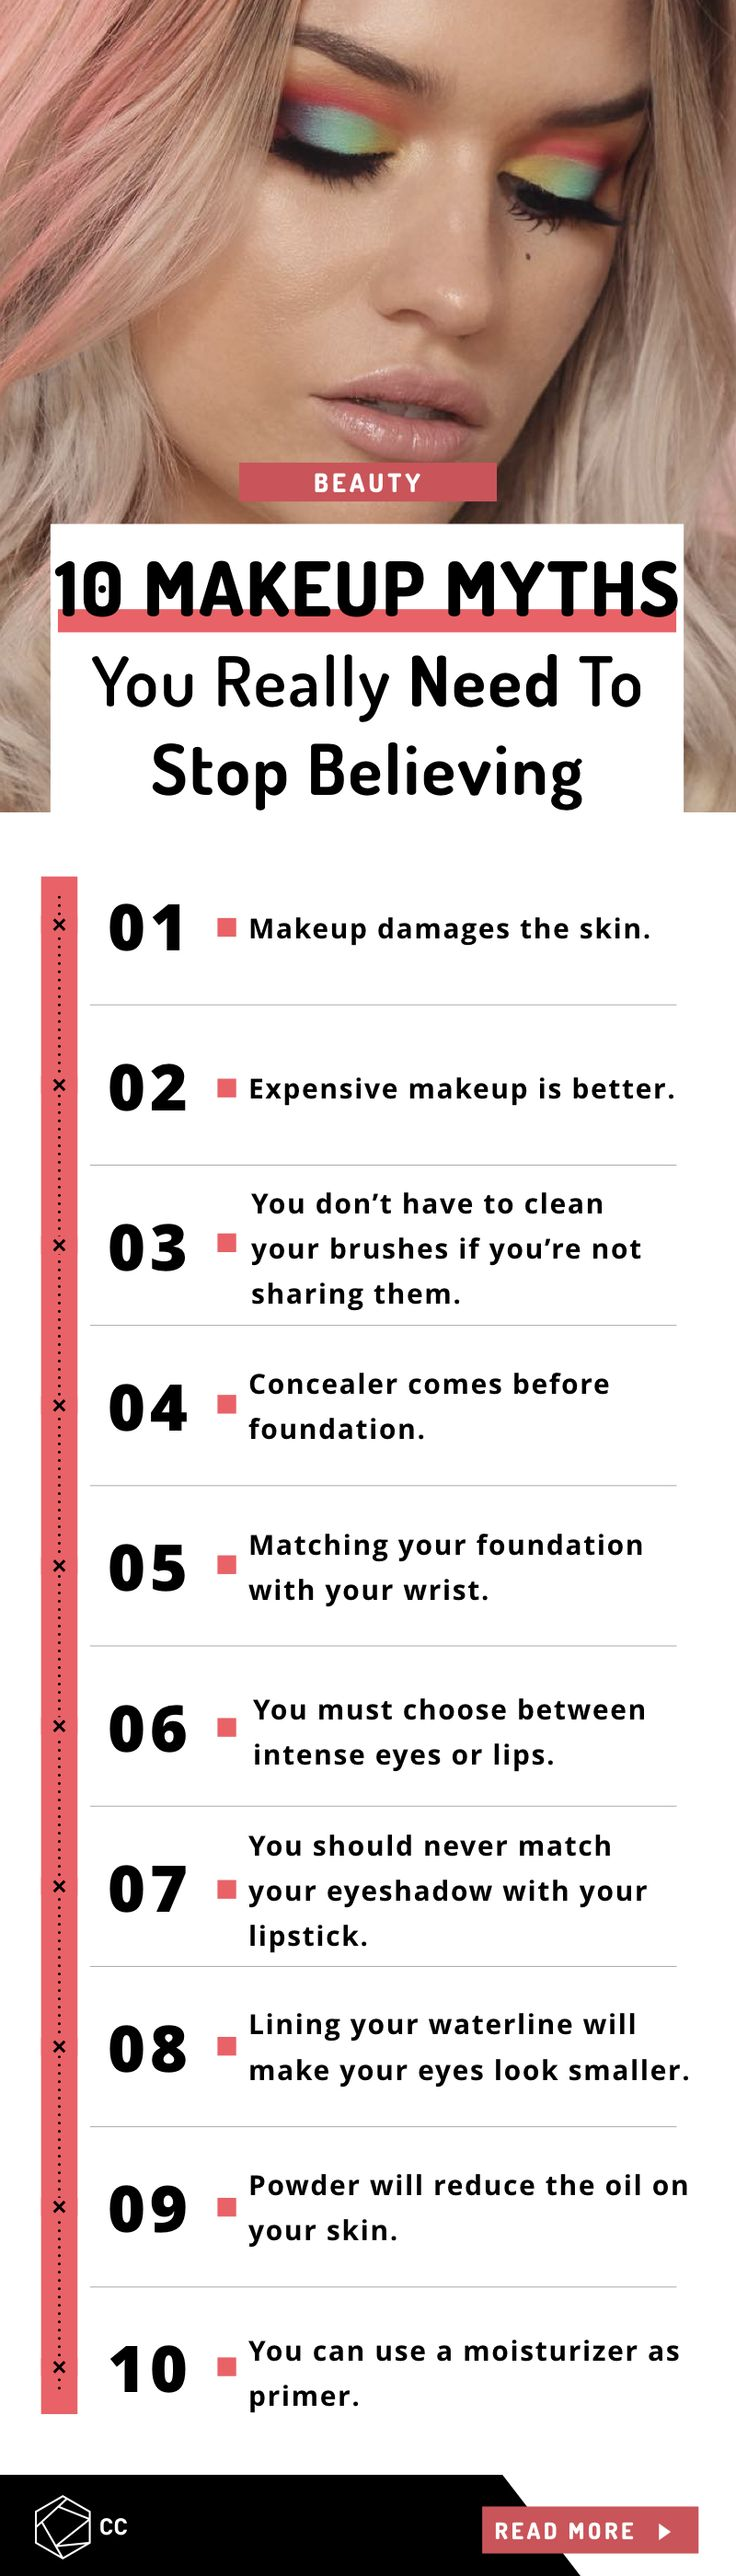 10 Common Myths You Need To Stop Believing When It Comes To Makeup  #makeup #beauty #makeupfacts #skincare #wellness